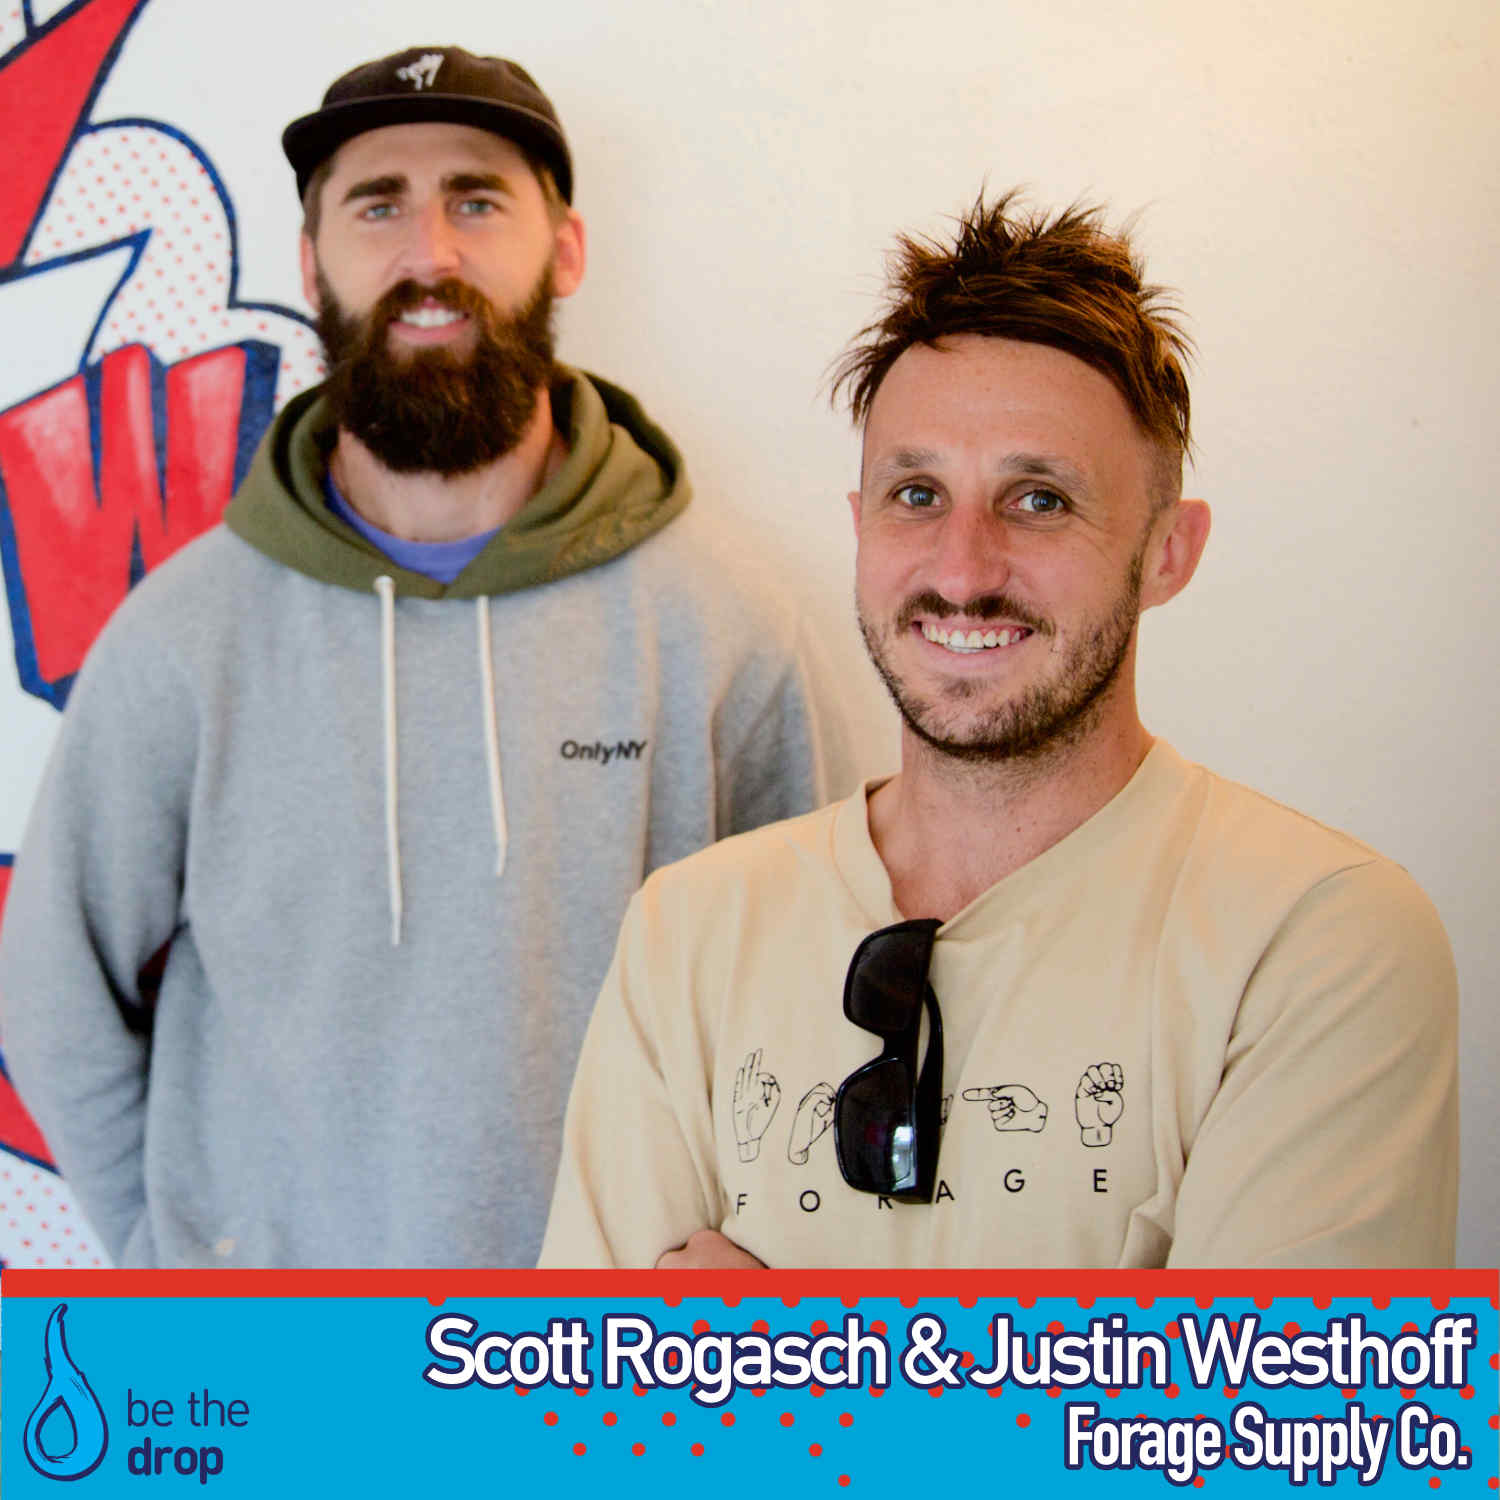 Justin Westhoff and Scott Rogasch Explain Their Social Enterprise